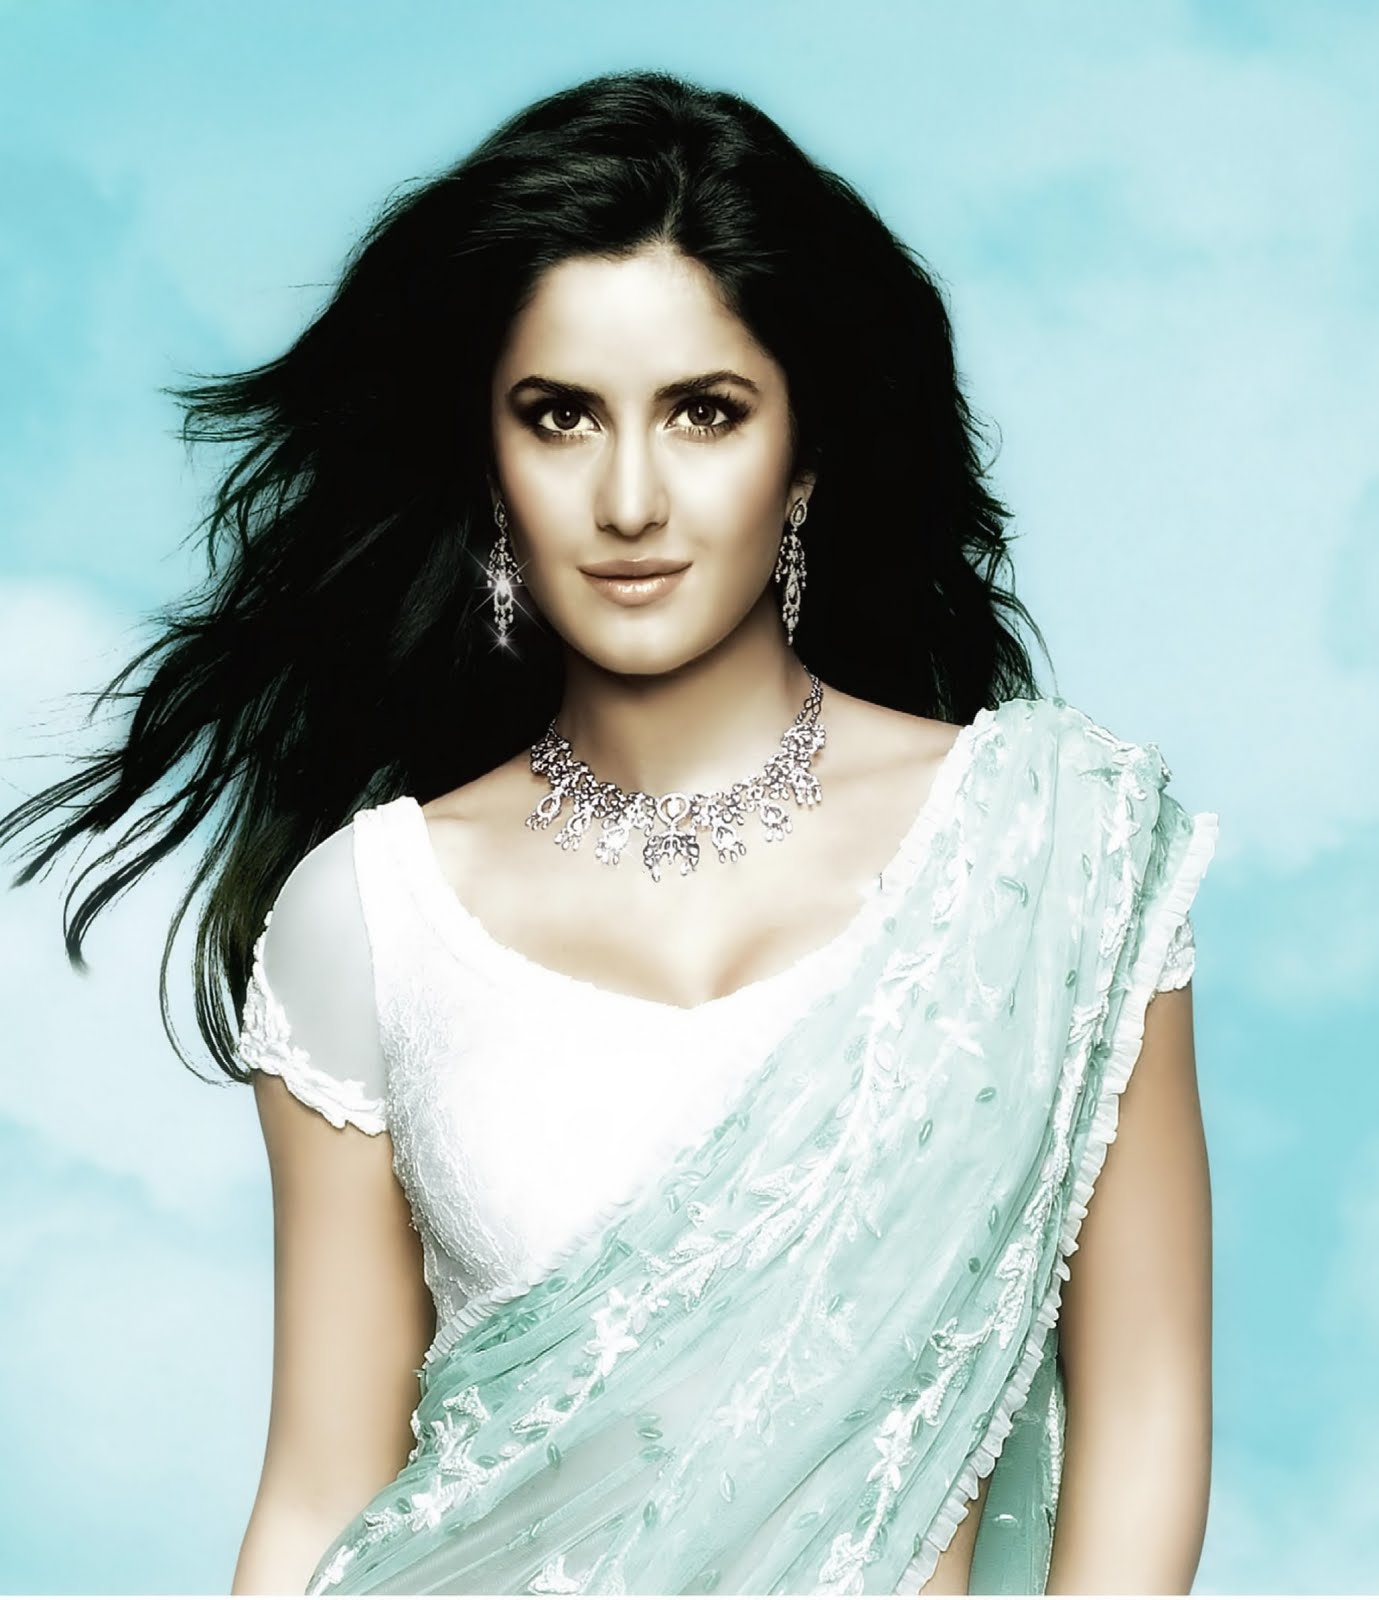 Katrina Kaif: large images of Katrina Kaif